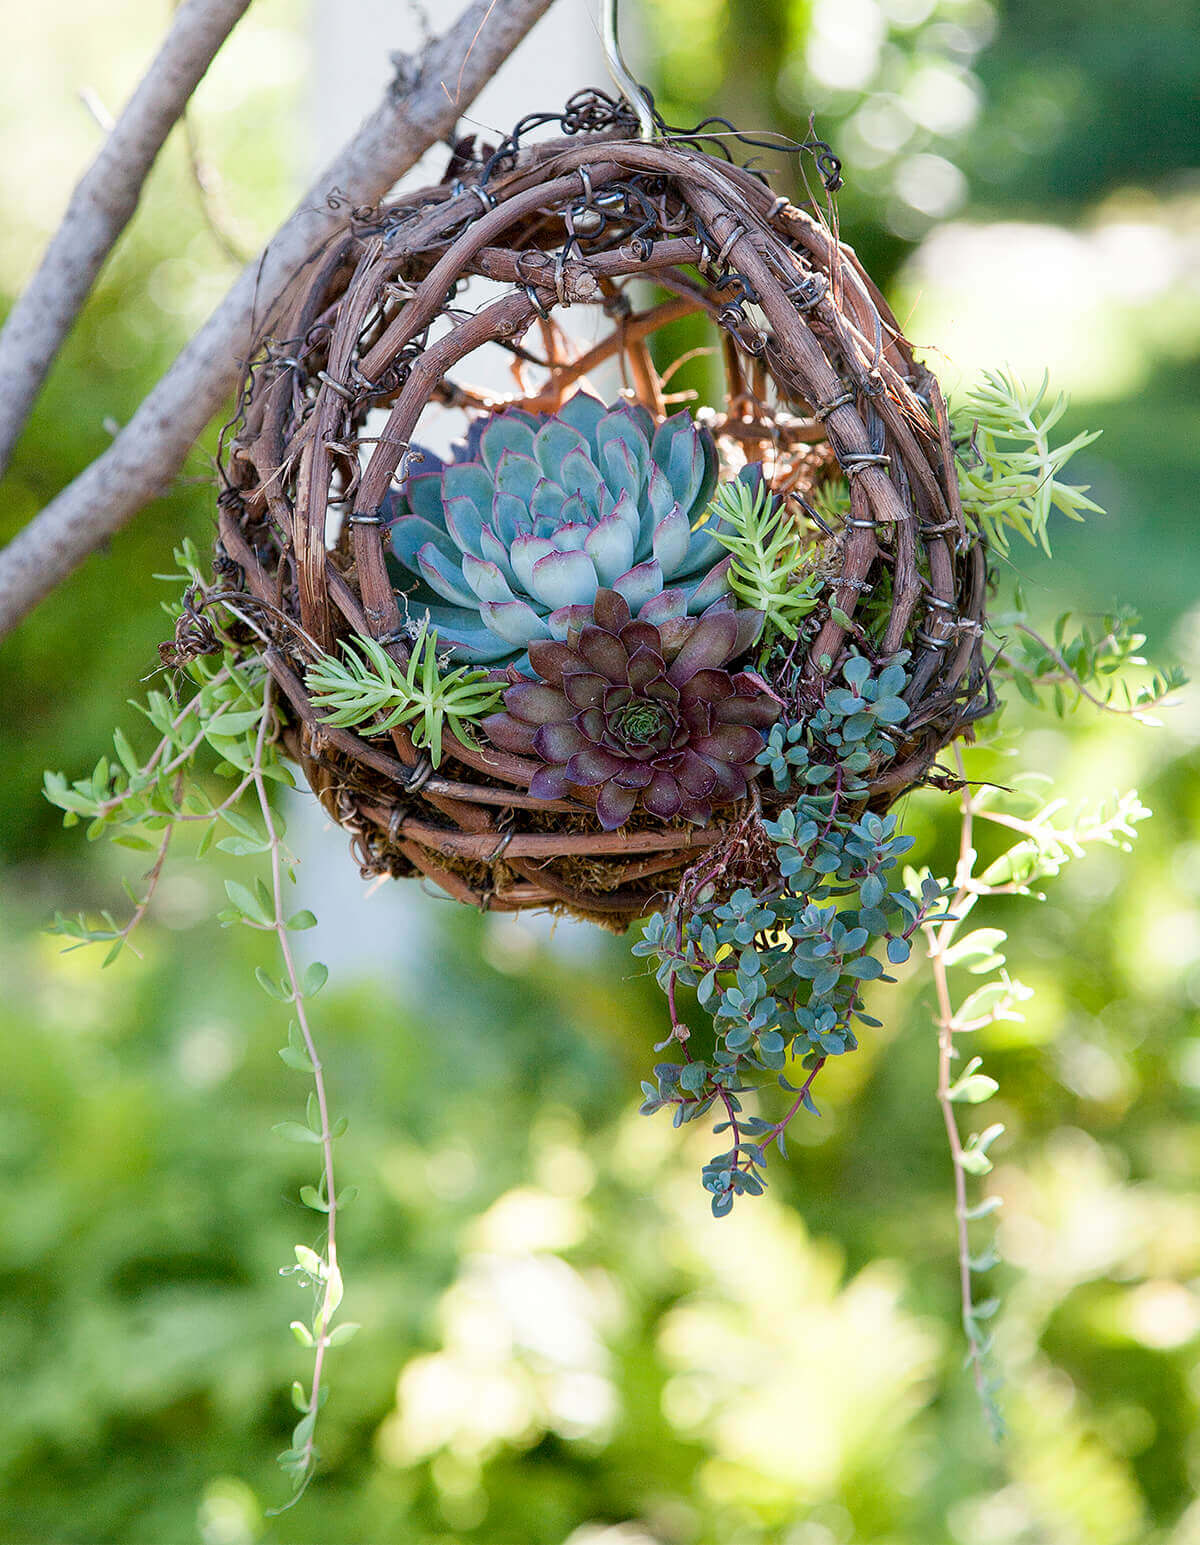 a bird nest planter on a branch with a blue flower in it